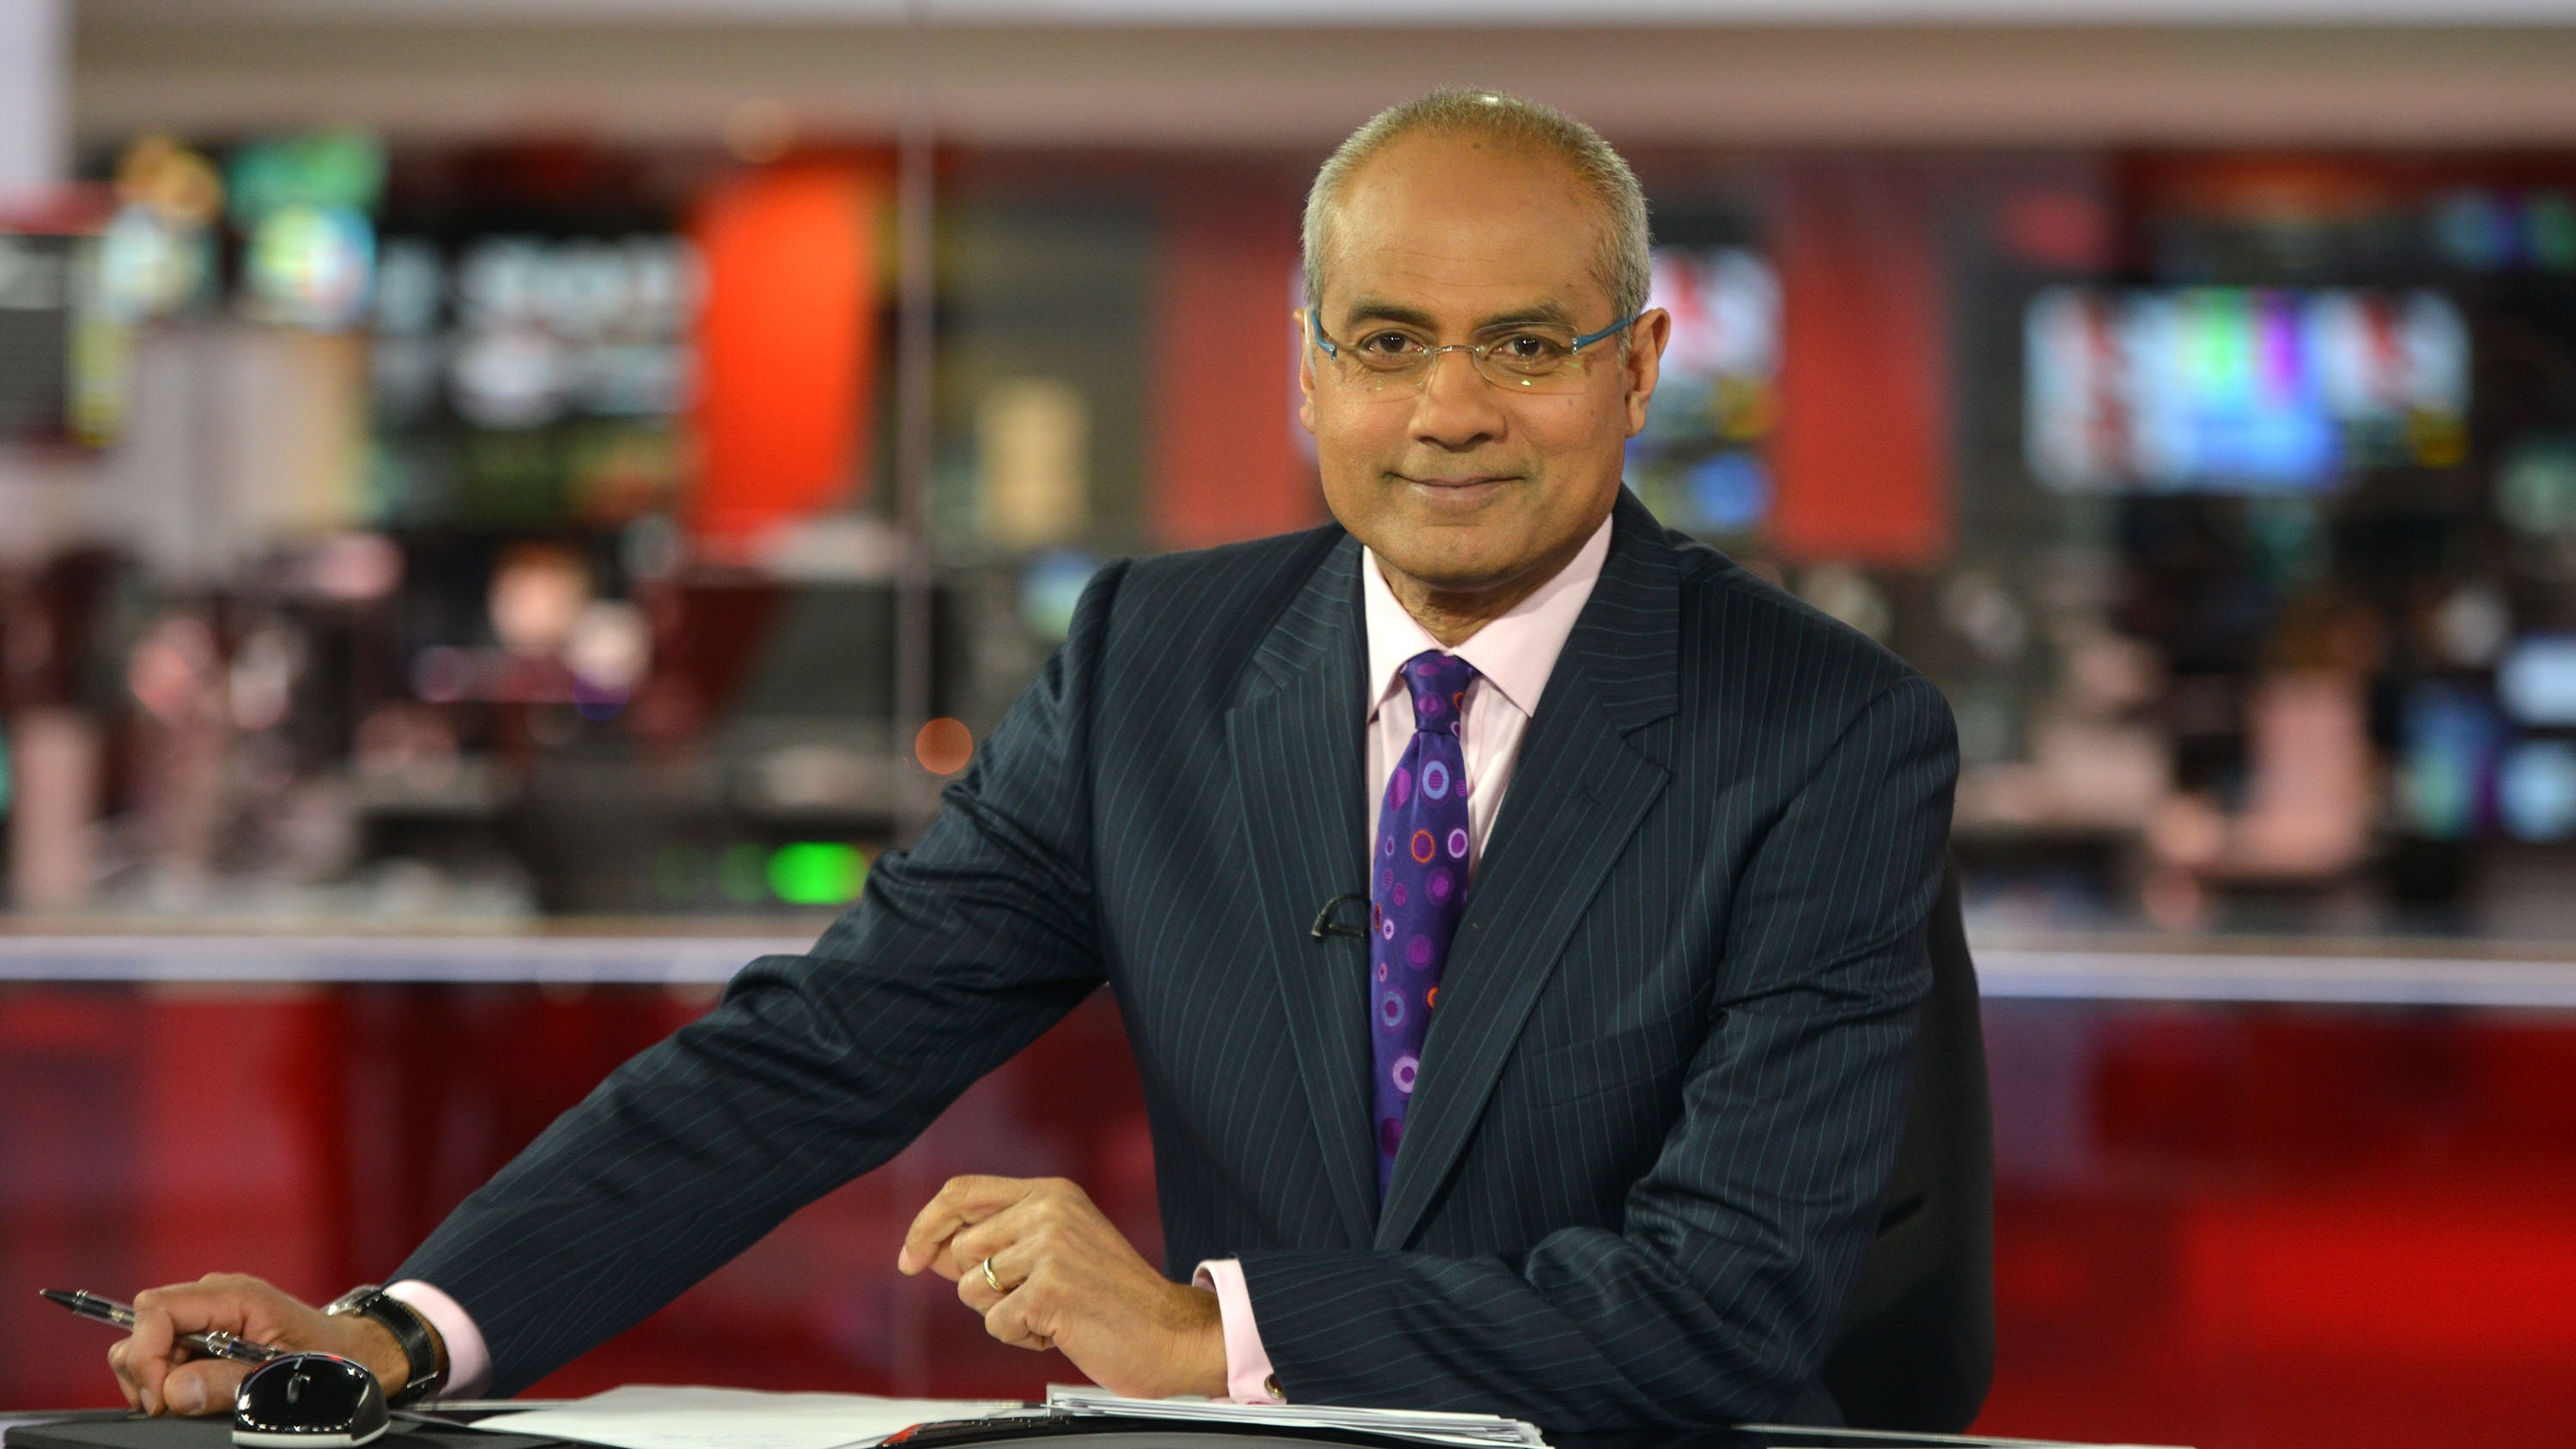 BBC newsreader George Alagiah reveals bowel cancer has spread